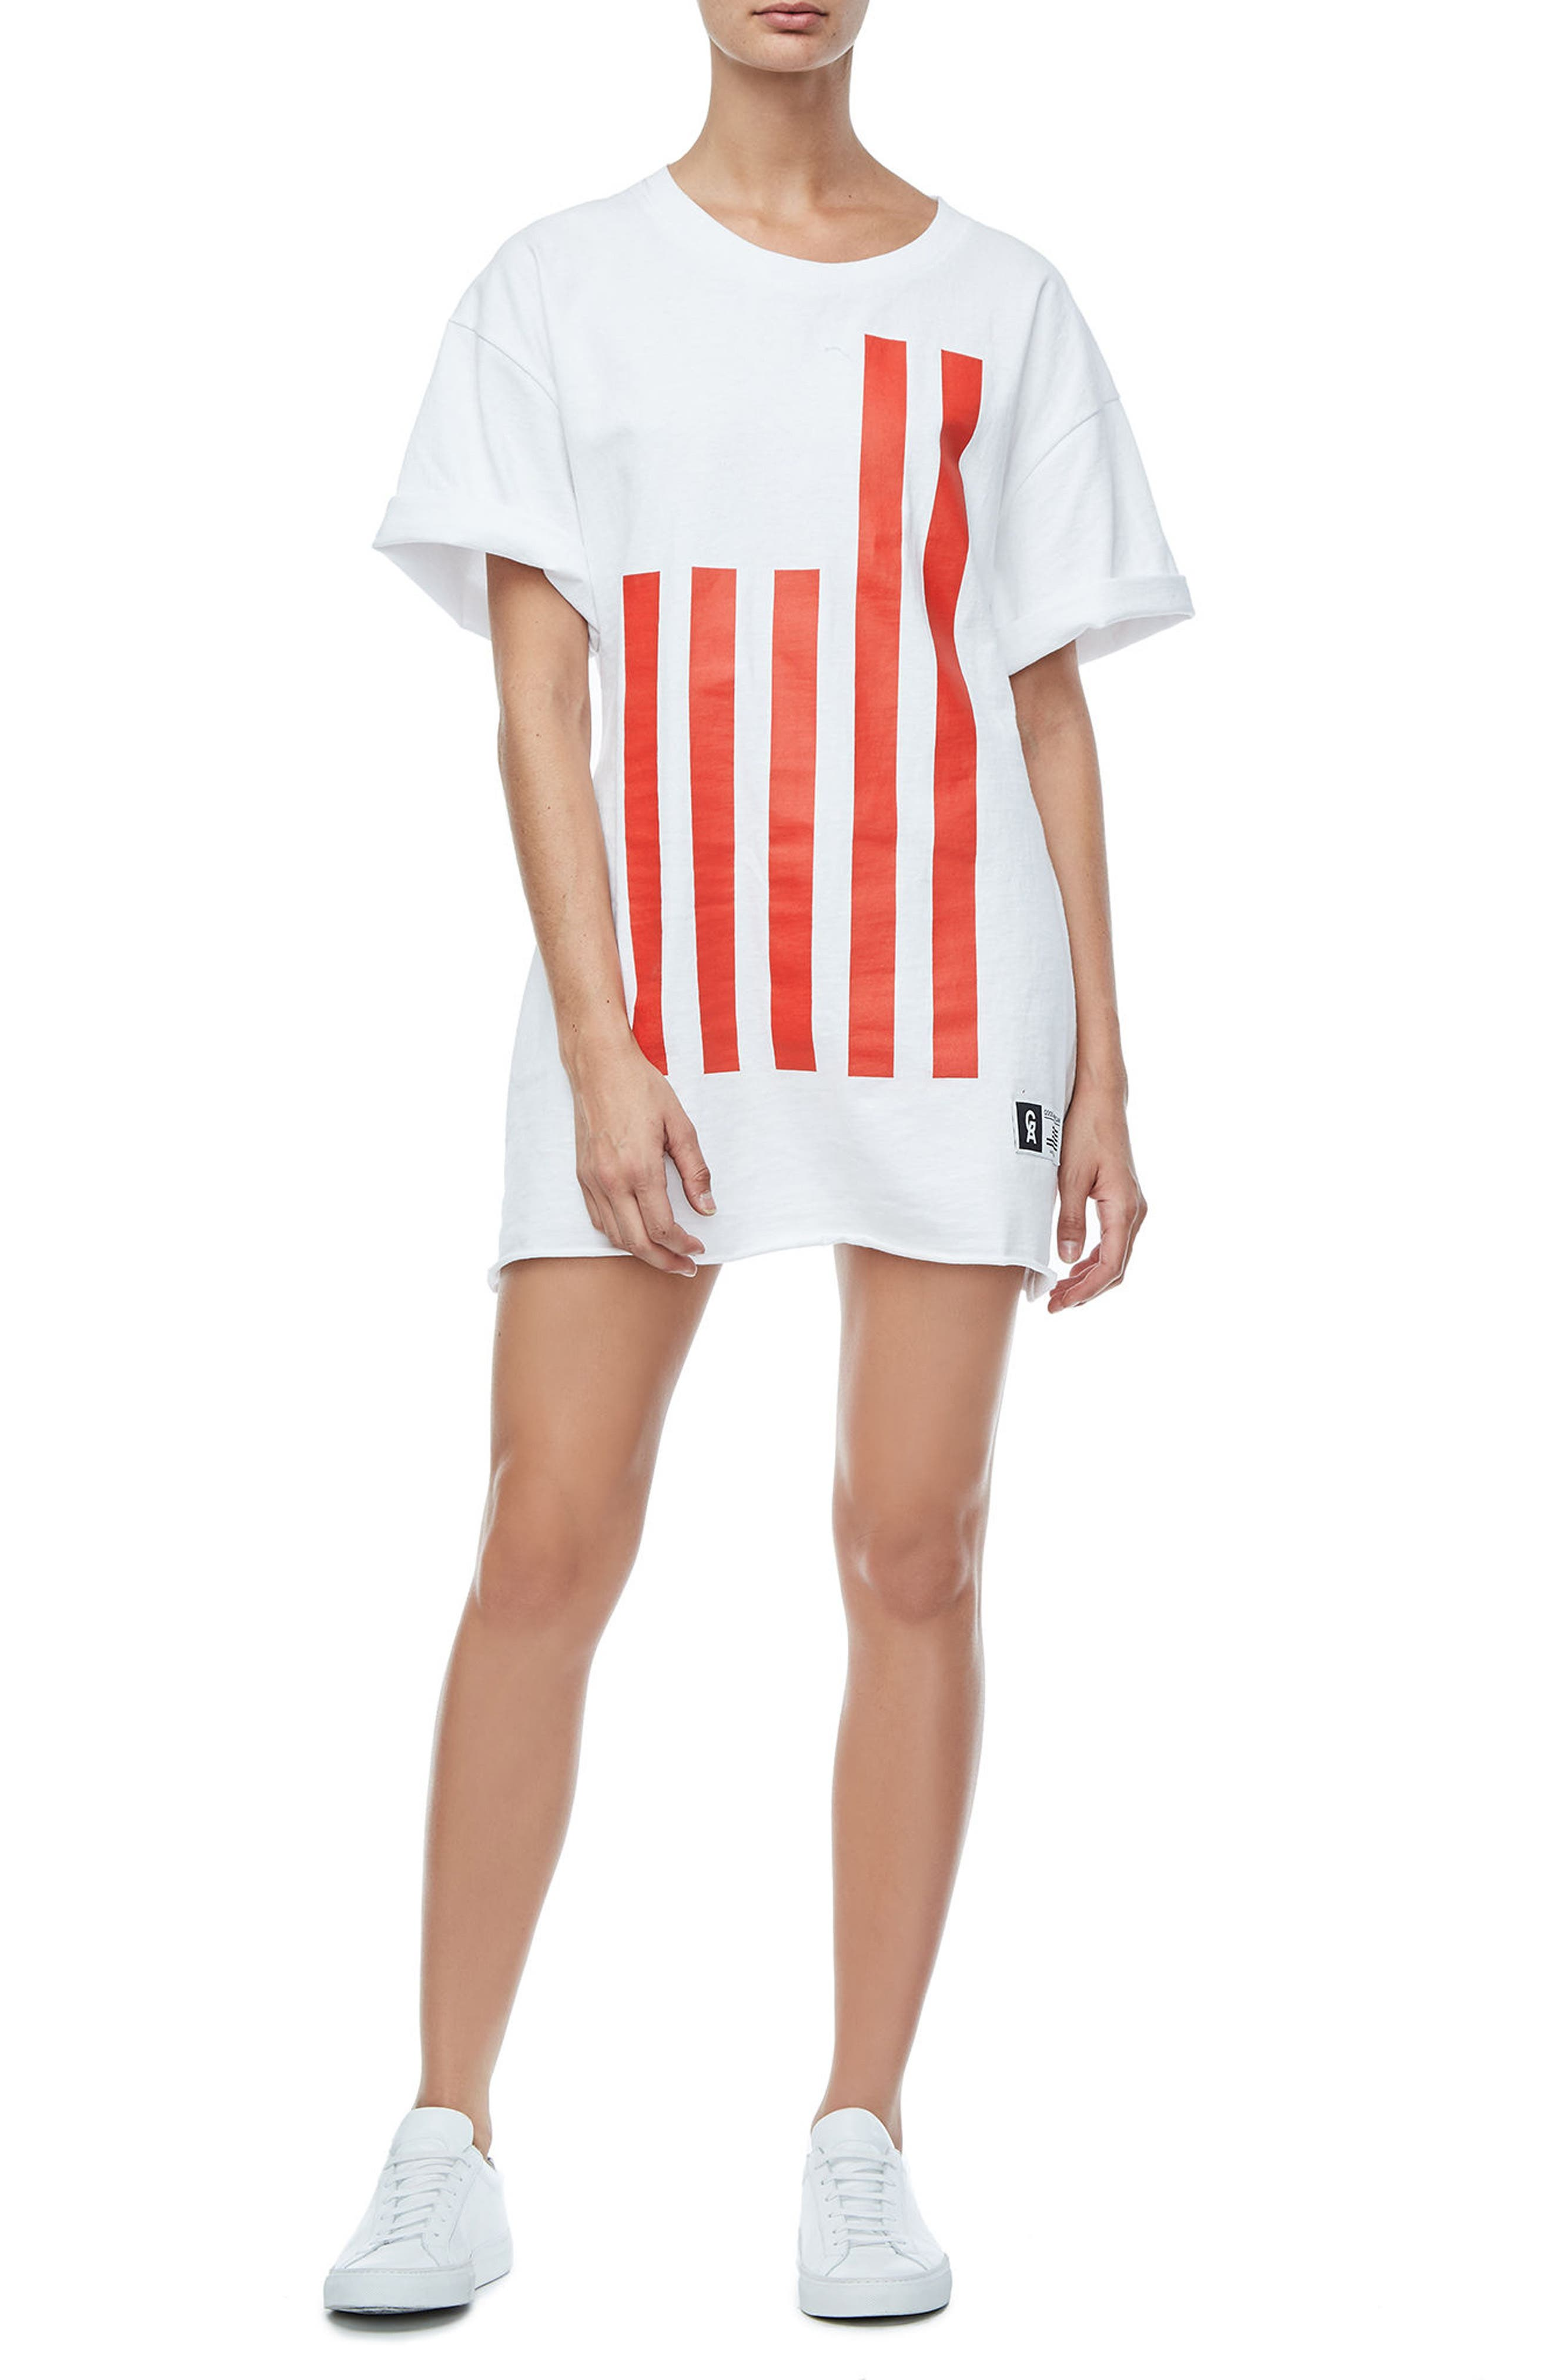 Goodies Graphic Oversize Tee,                             Alternate thumbnail 3, color,